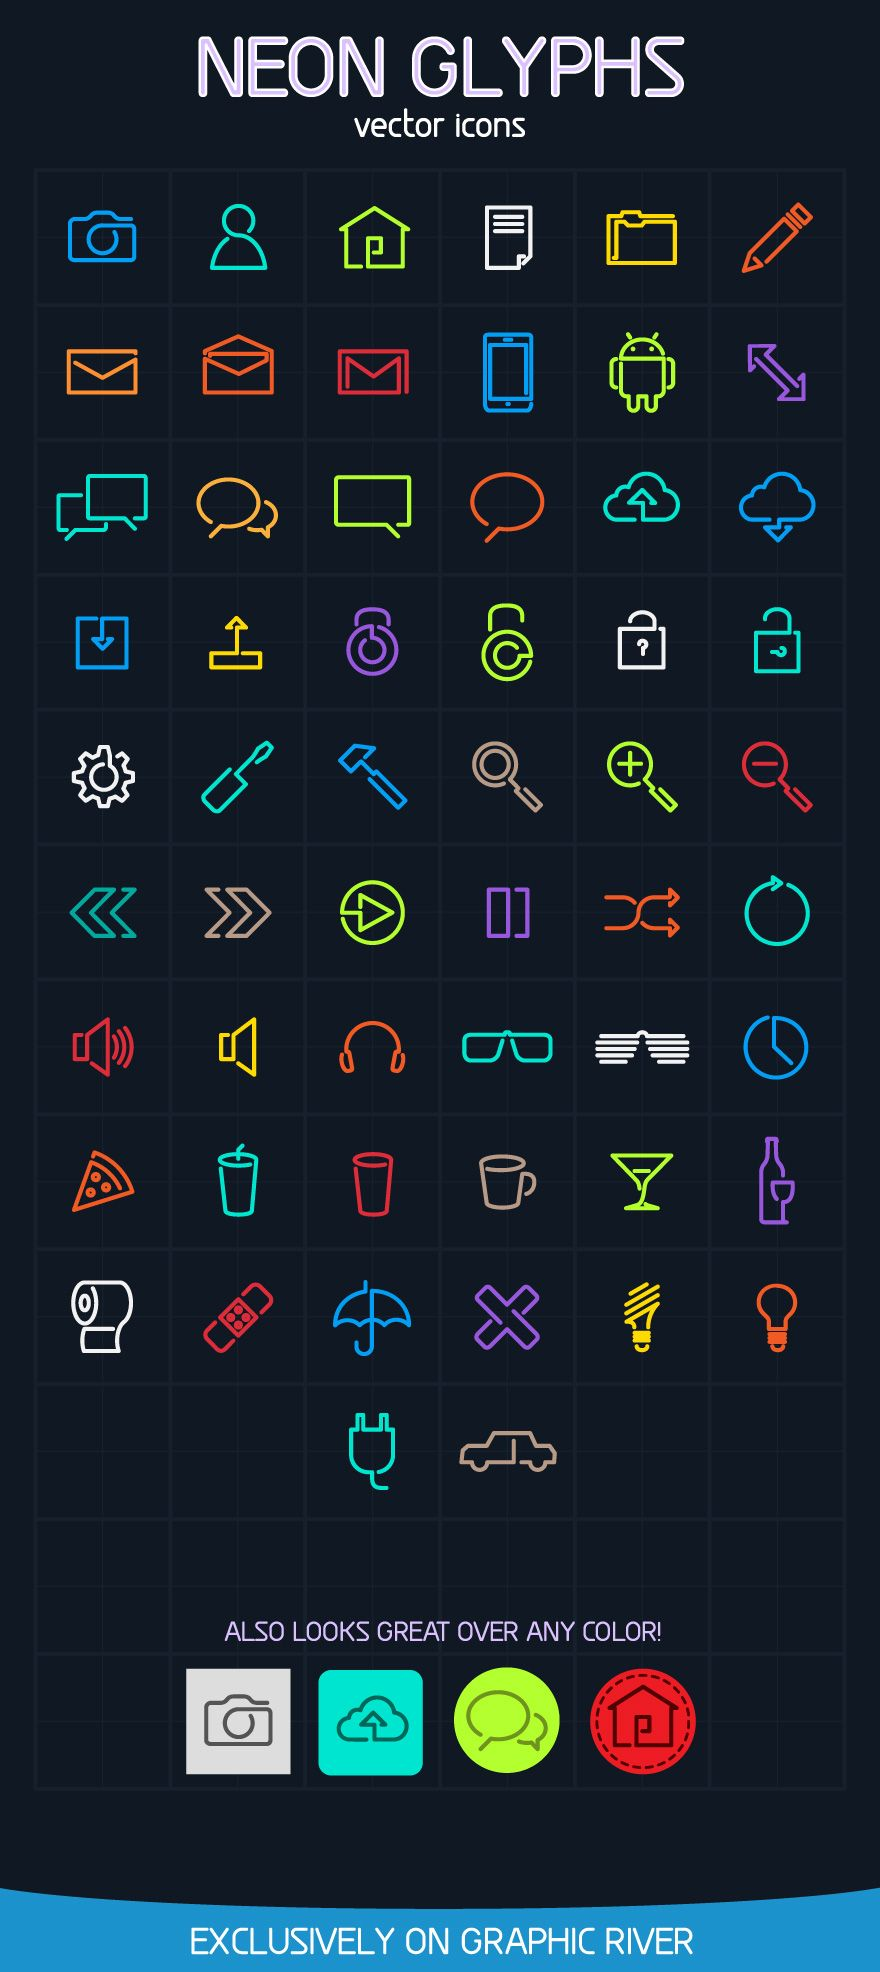 Neon Glyphs Vector Icons by Xiao Ali (via Creattica